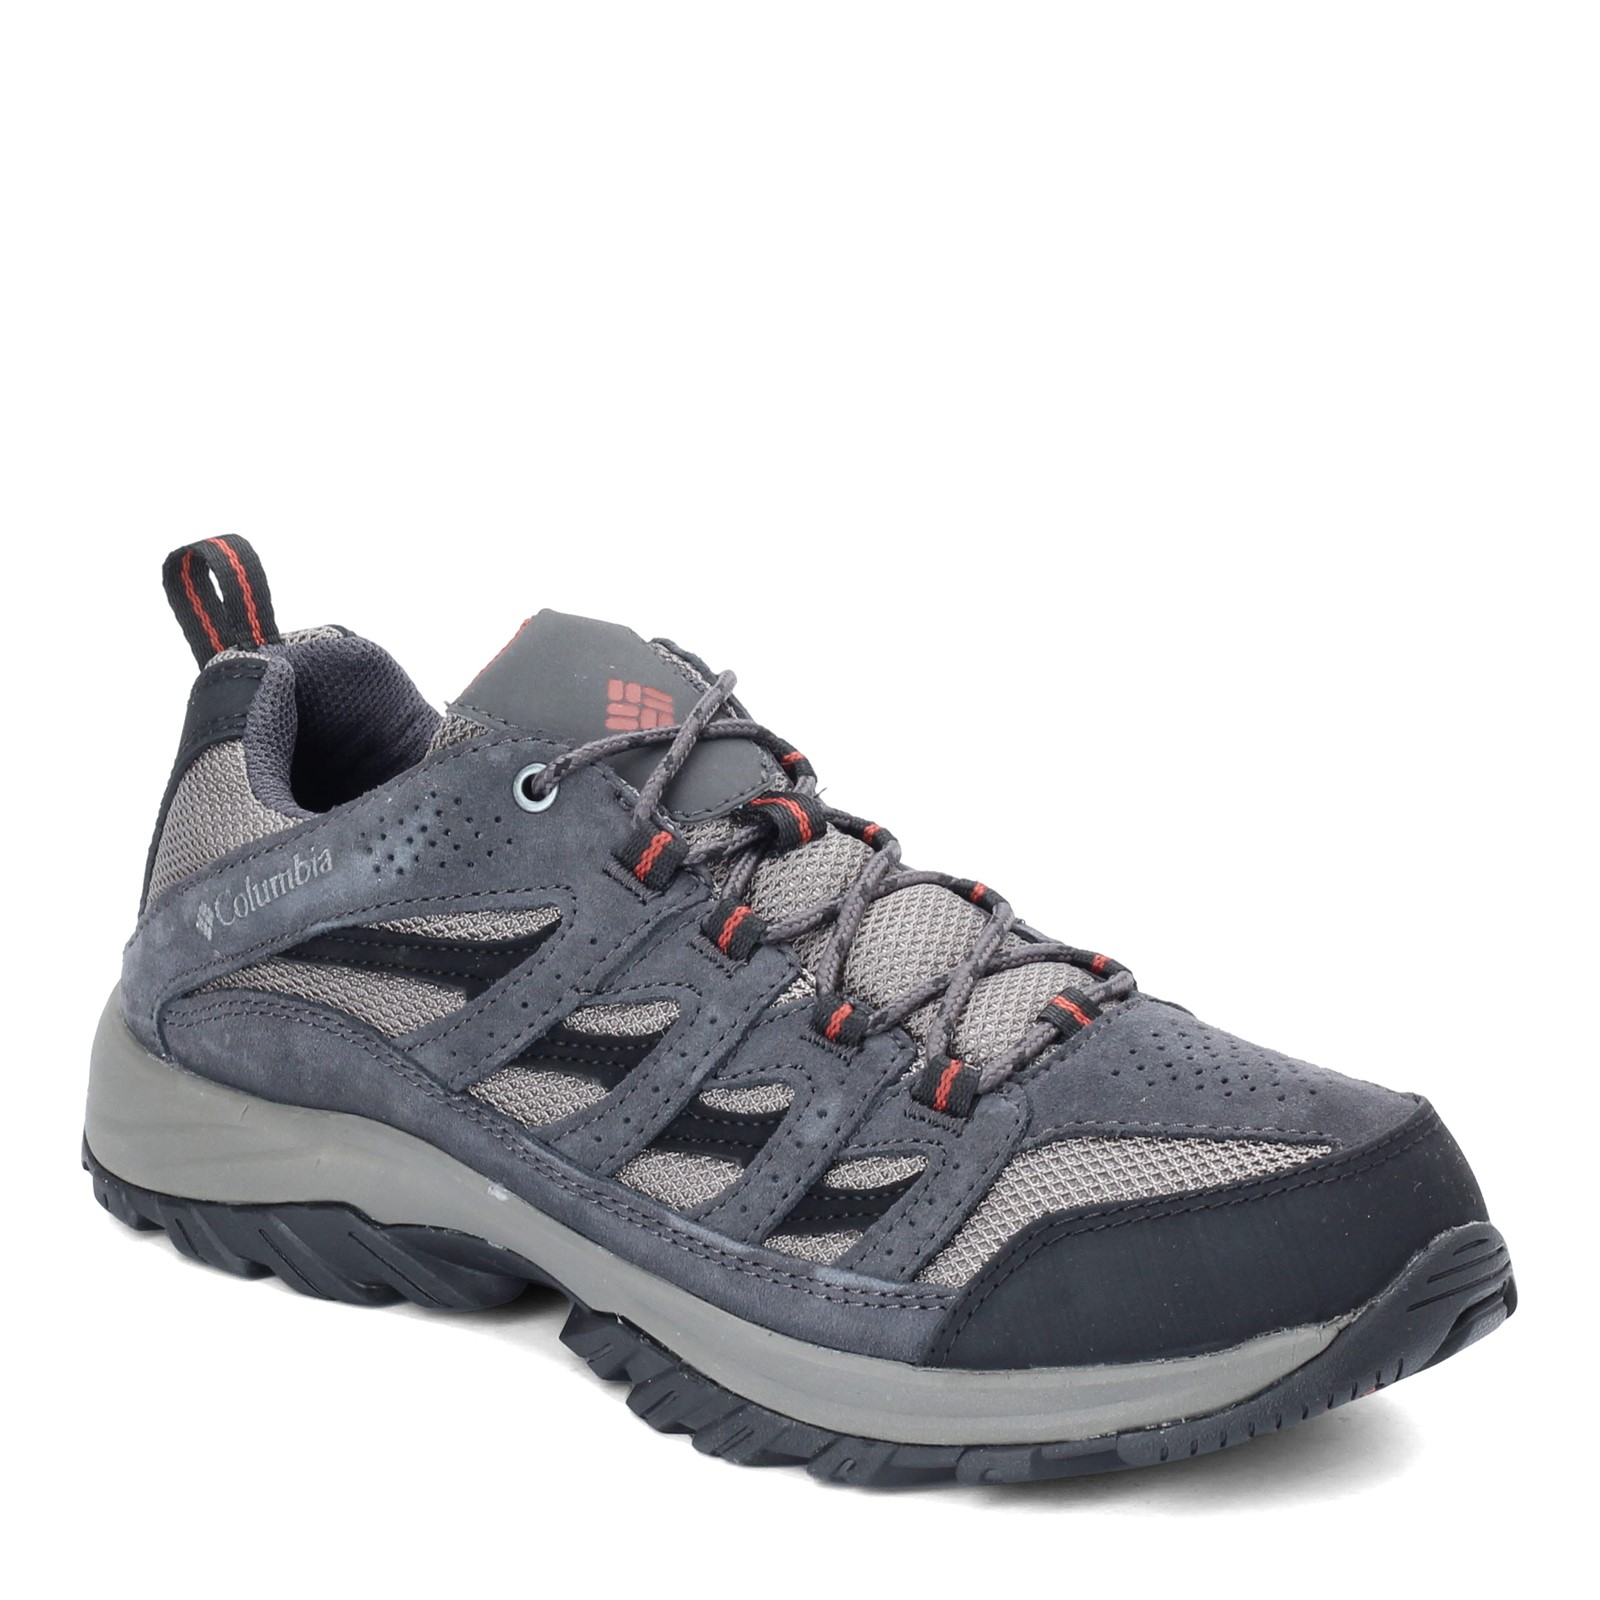 Men's Columbia, Crestwood Hiking Shoes - Wide Width